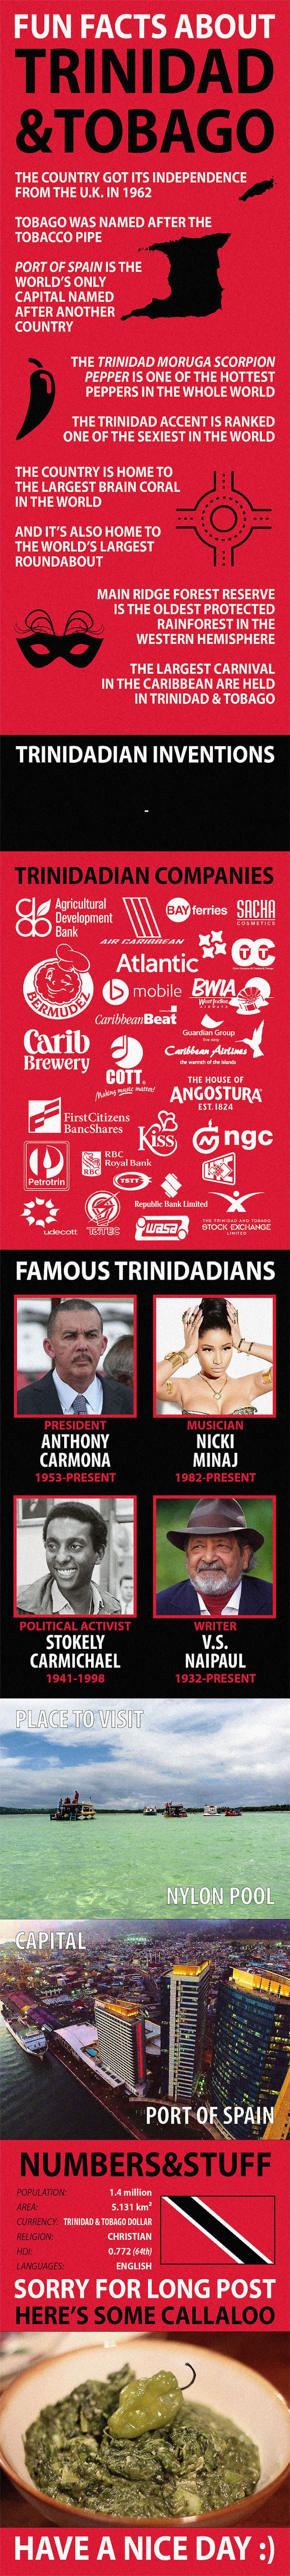 Fun Facts about Trinidad and Tobago